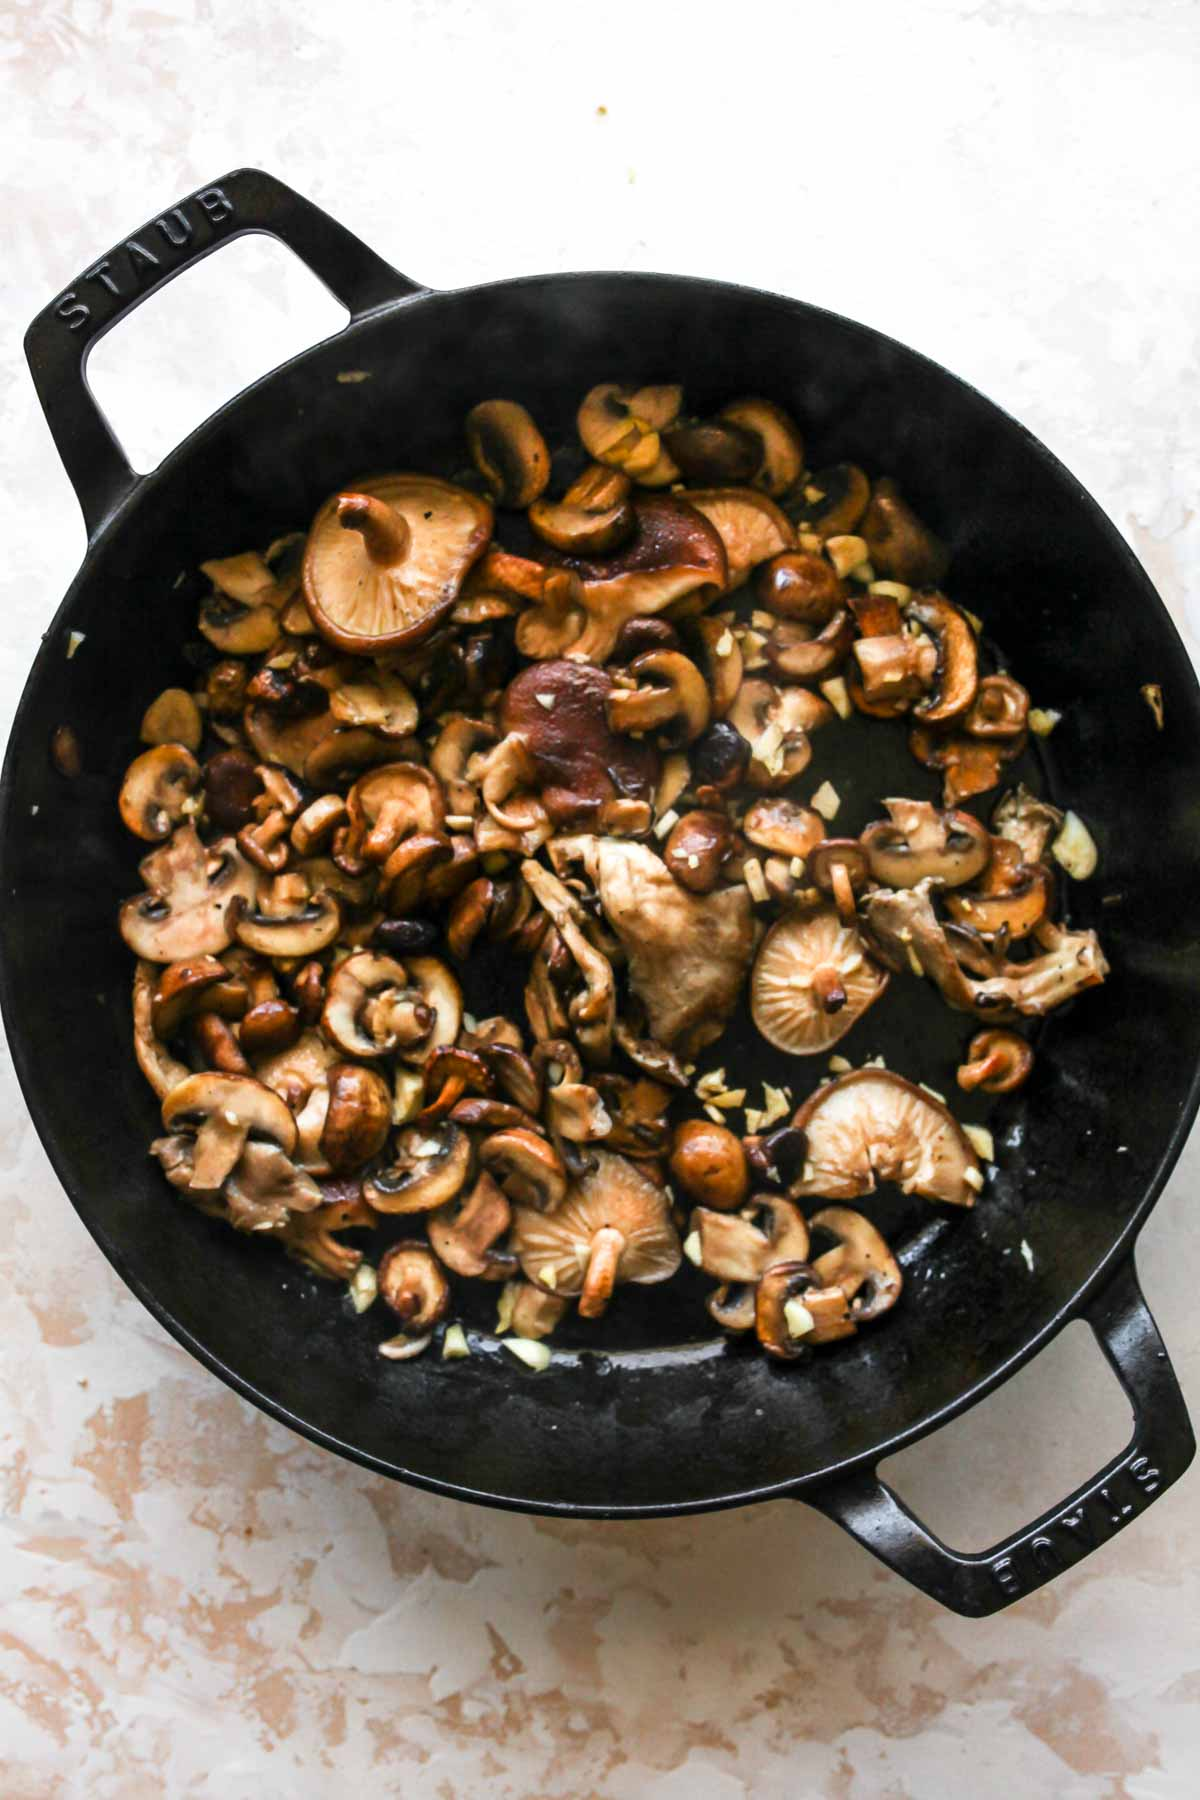 Mushrooms being sauteed in a cast-iron skillet